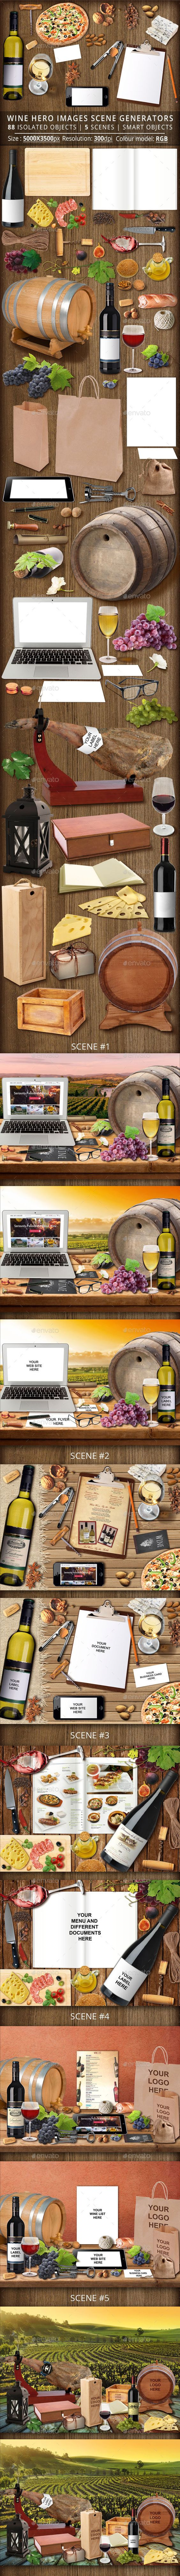 Wine Hero Images Scene Generators #psd #mockup #scene #generator #hero #image #facebook #cover #header